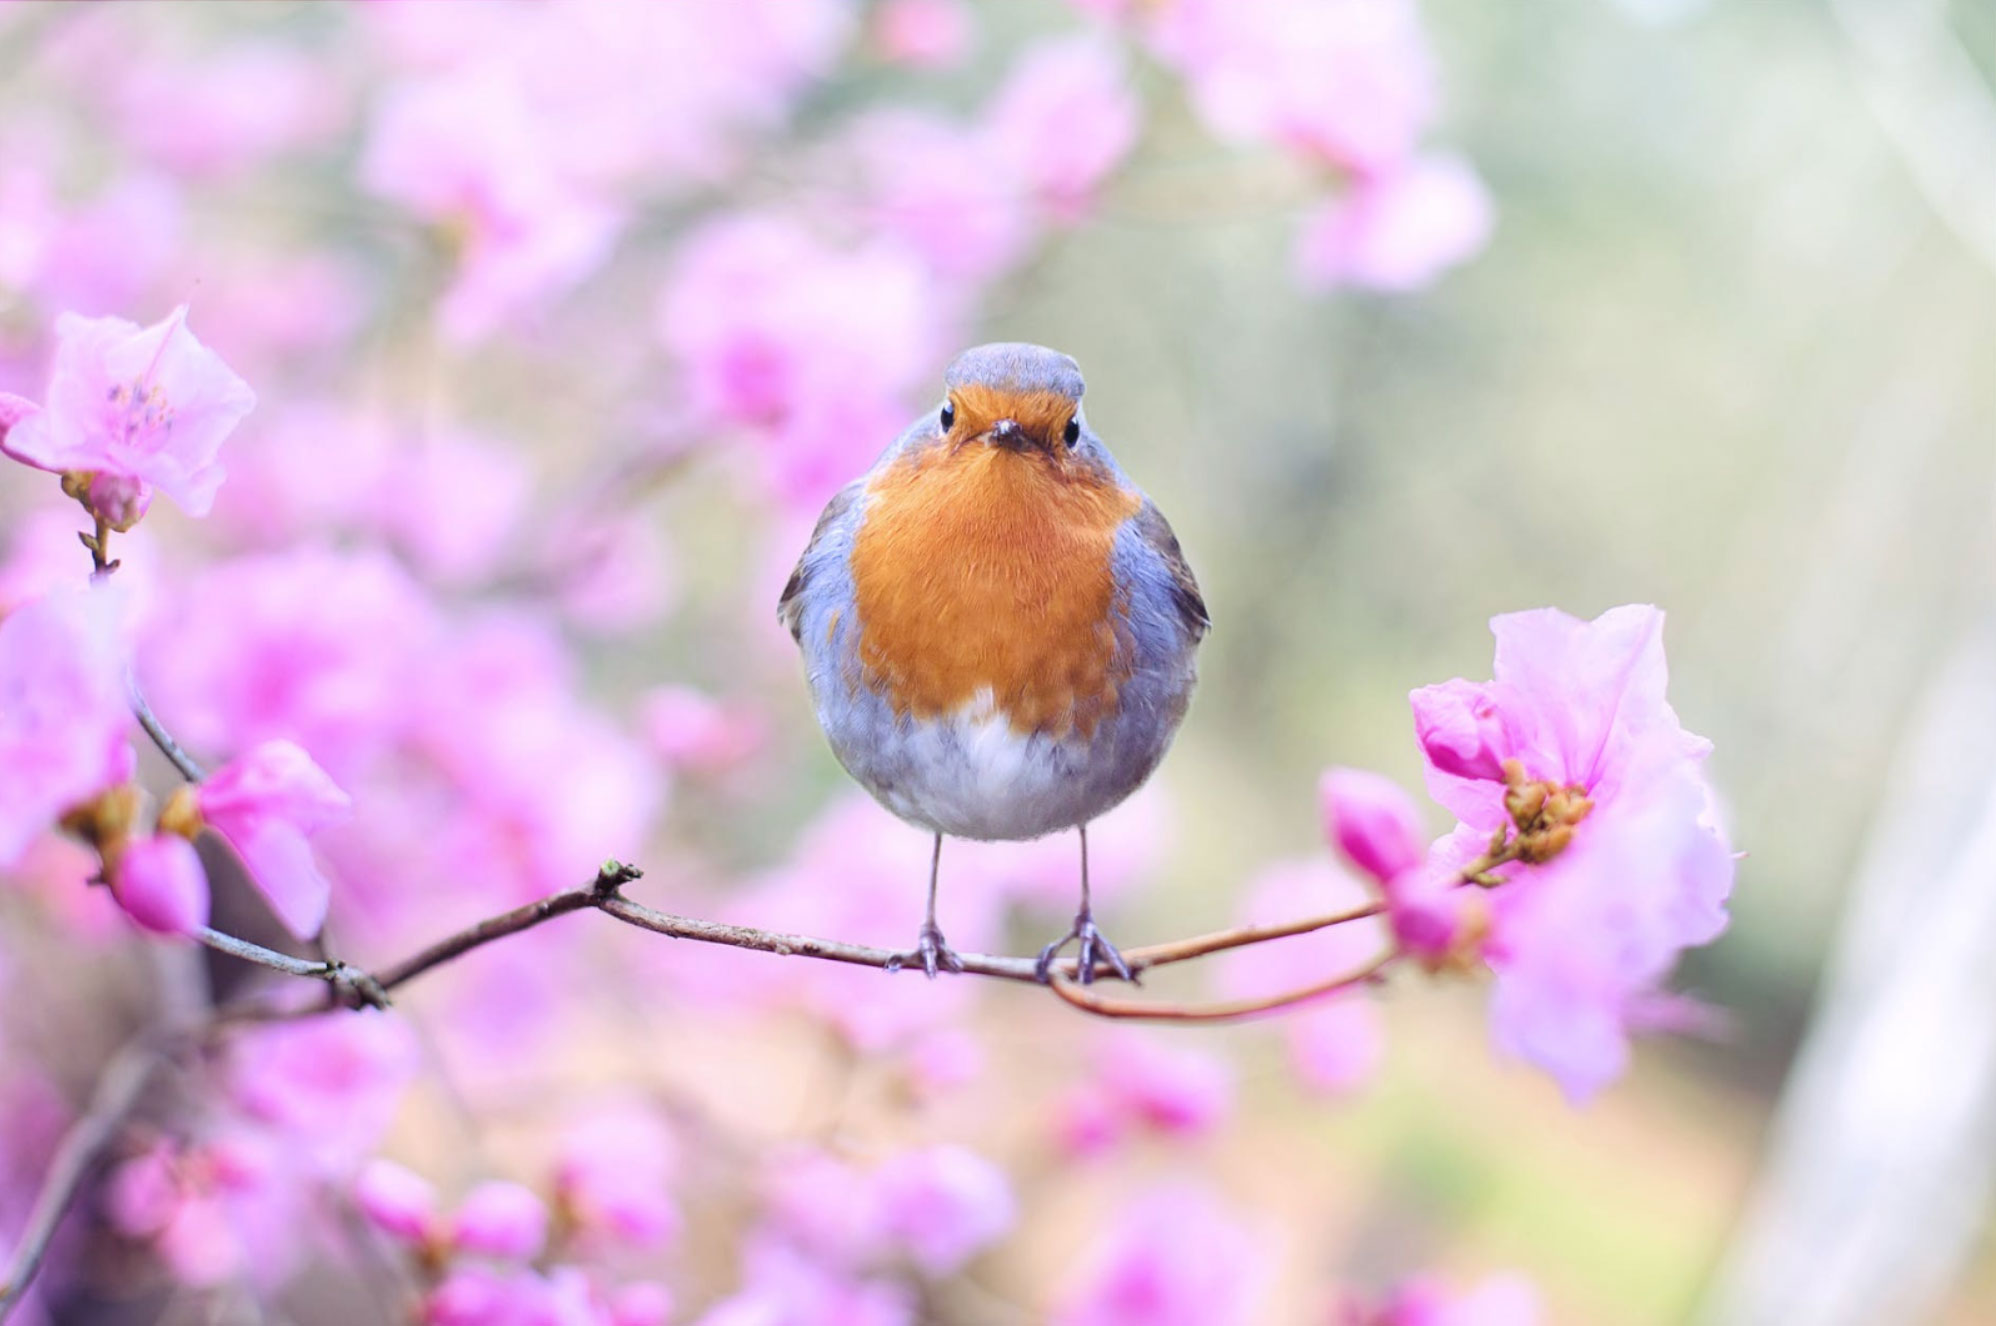 a bird in a flowering spring tree